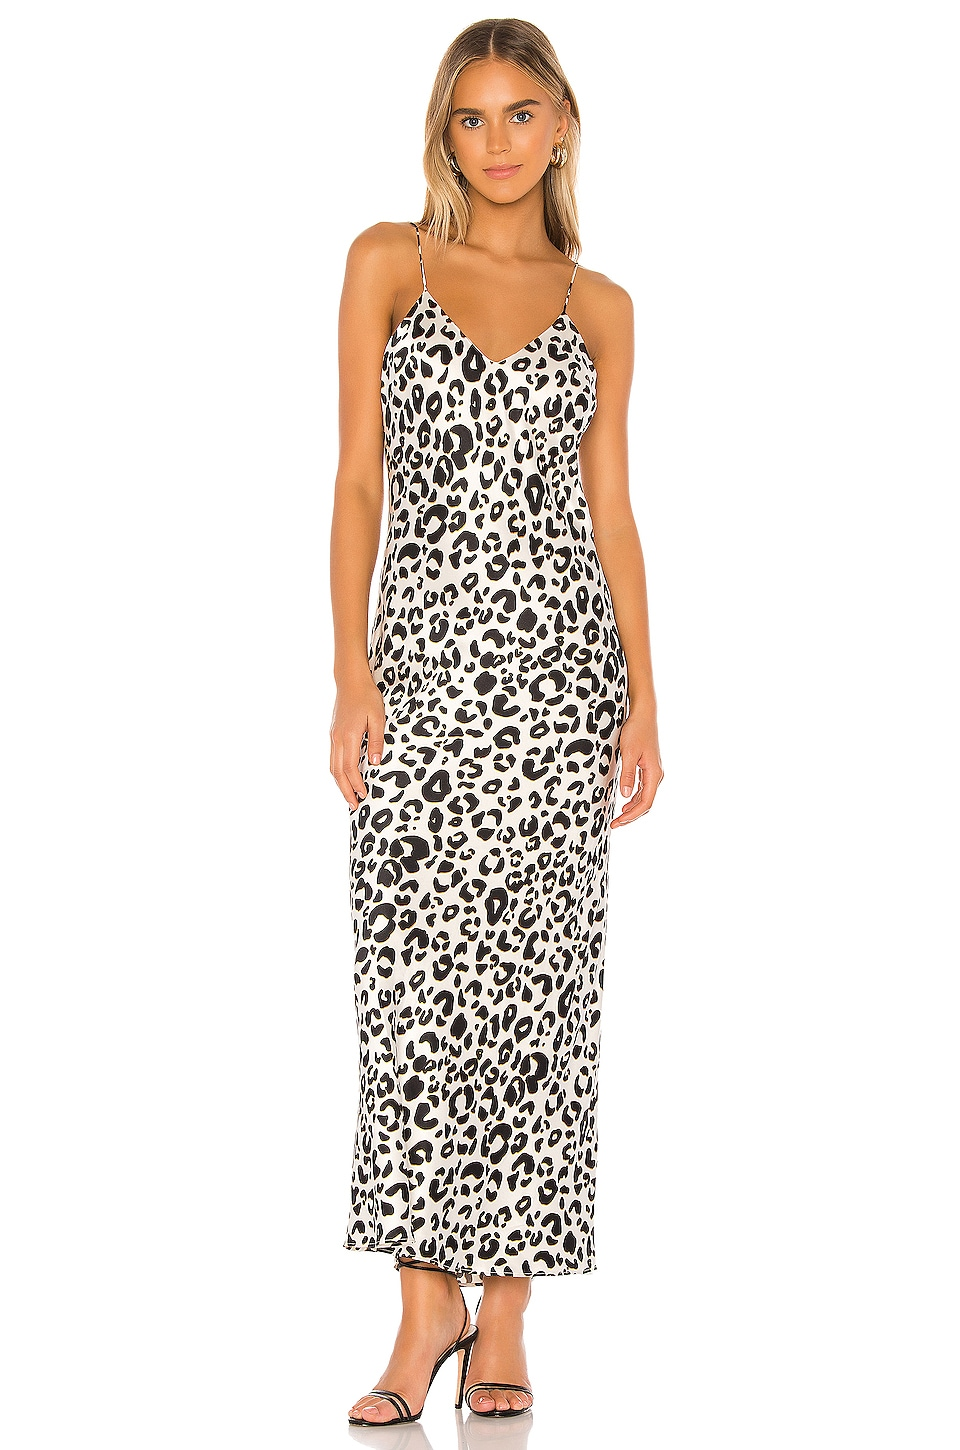 ANINE BING Rosemary Slip Dress in Leopard